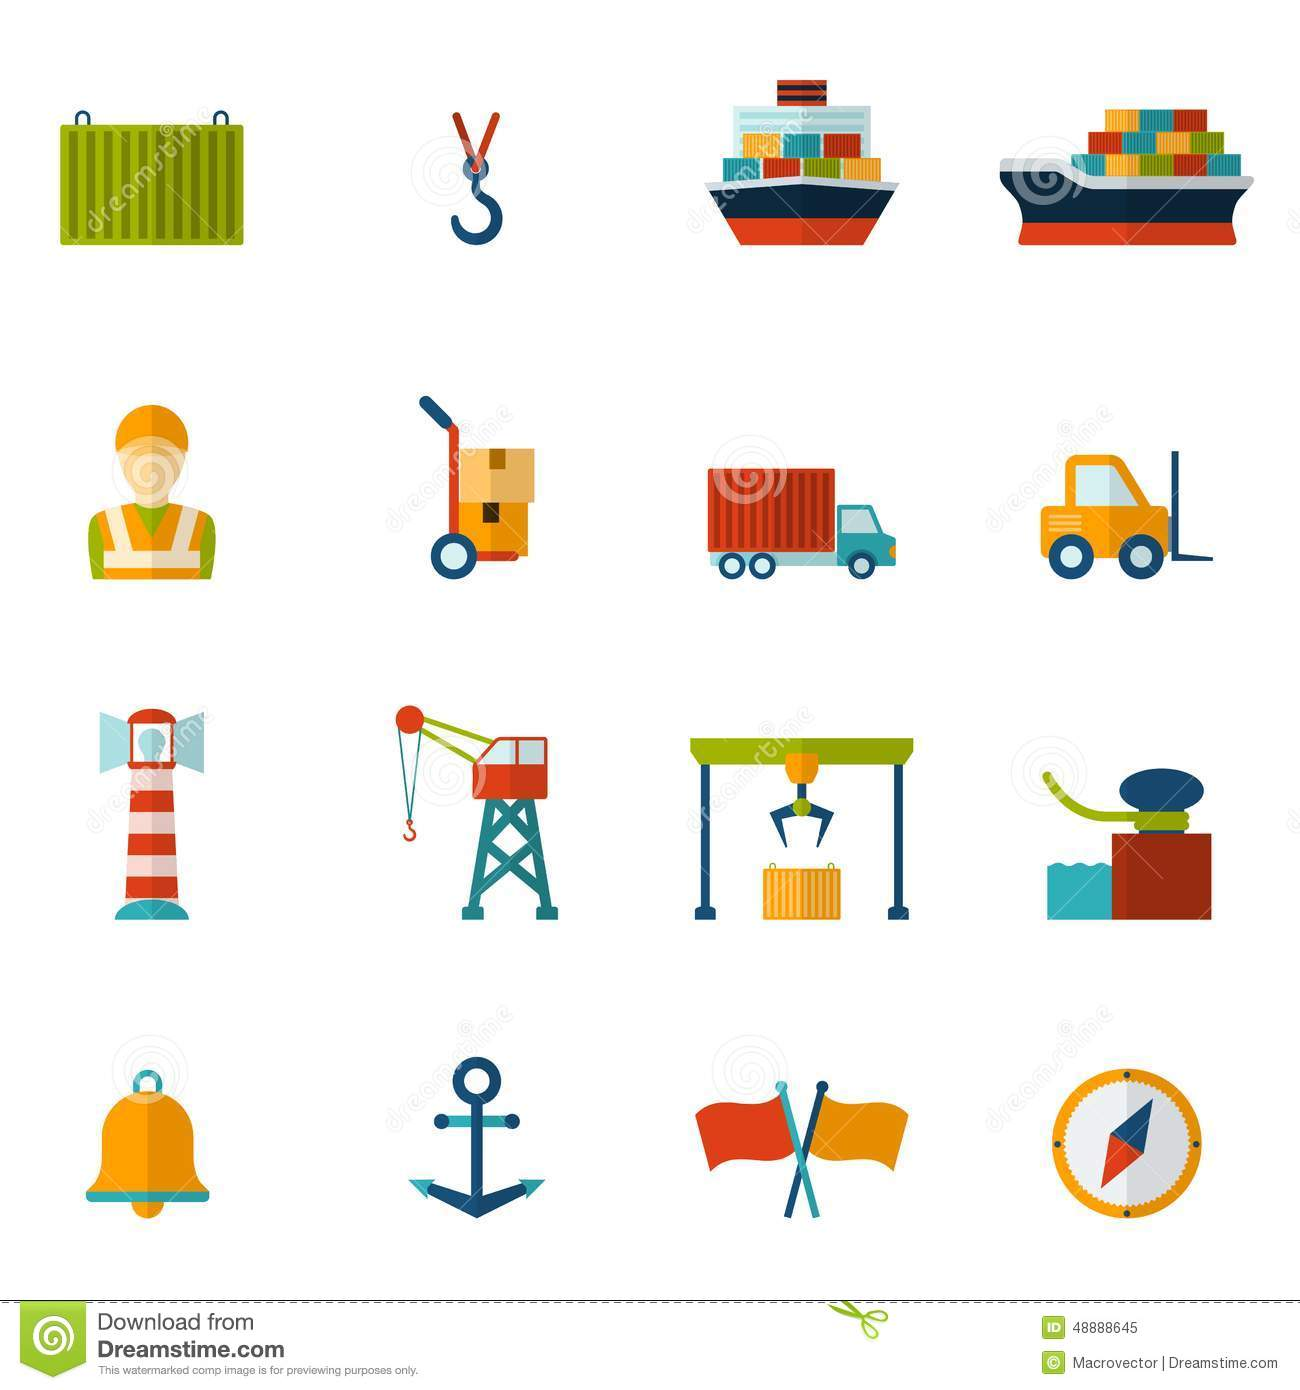 Cargo Icon Stock Photos, Royalty-Free Images & Vectors - Shutterstock